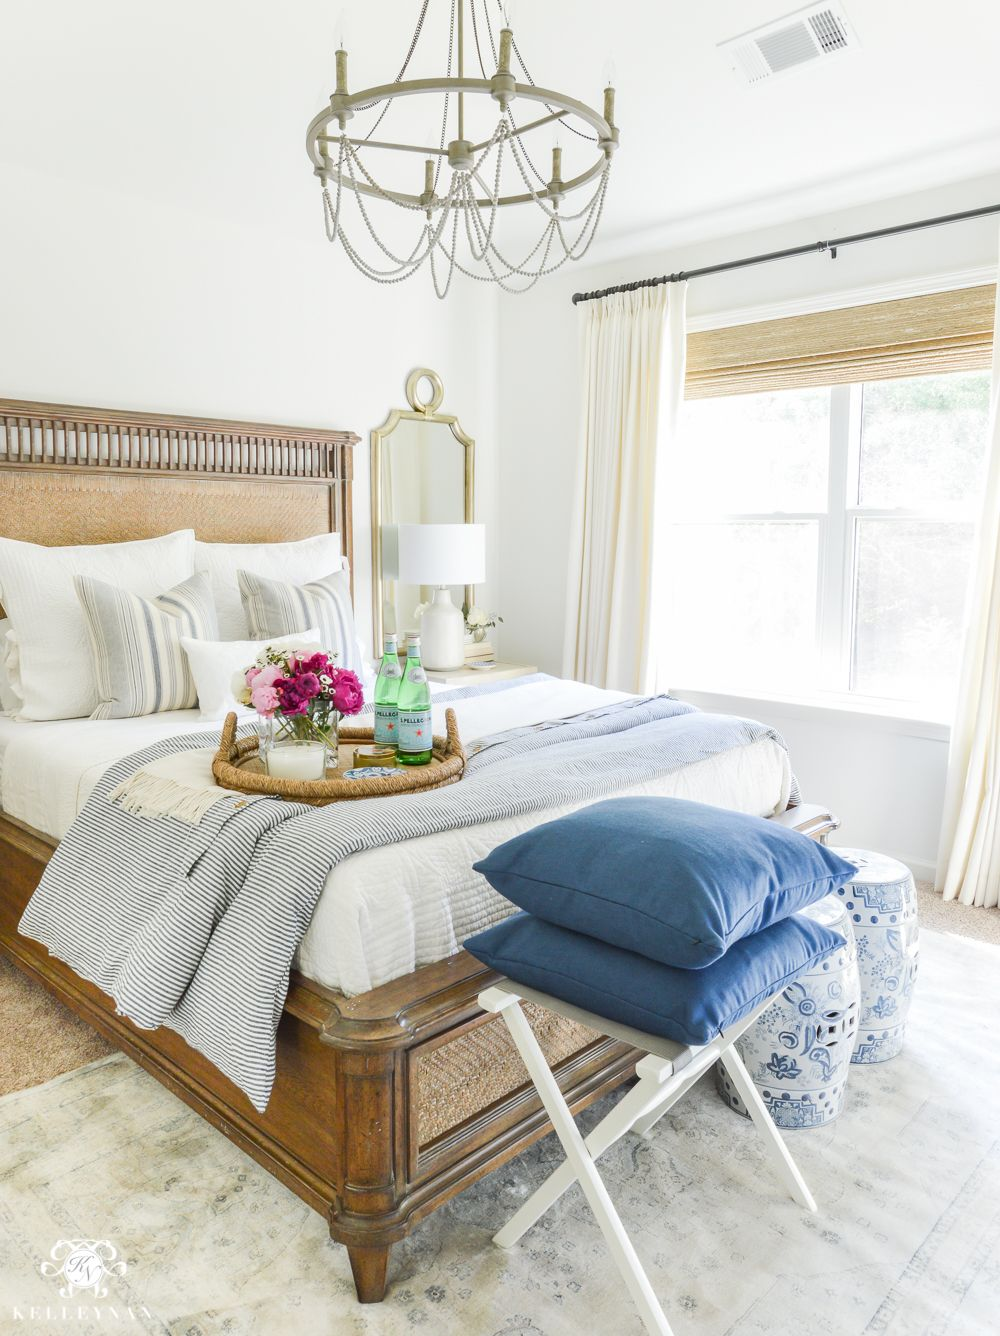 Attirant Guest Room Essentials  What Every Guest Bedroom Should Have  Blue And White Guest  Bedroom With Chandelier